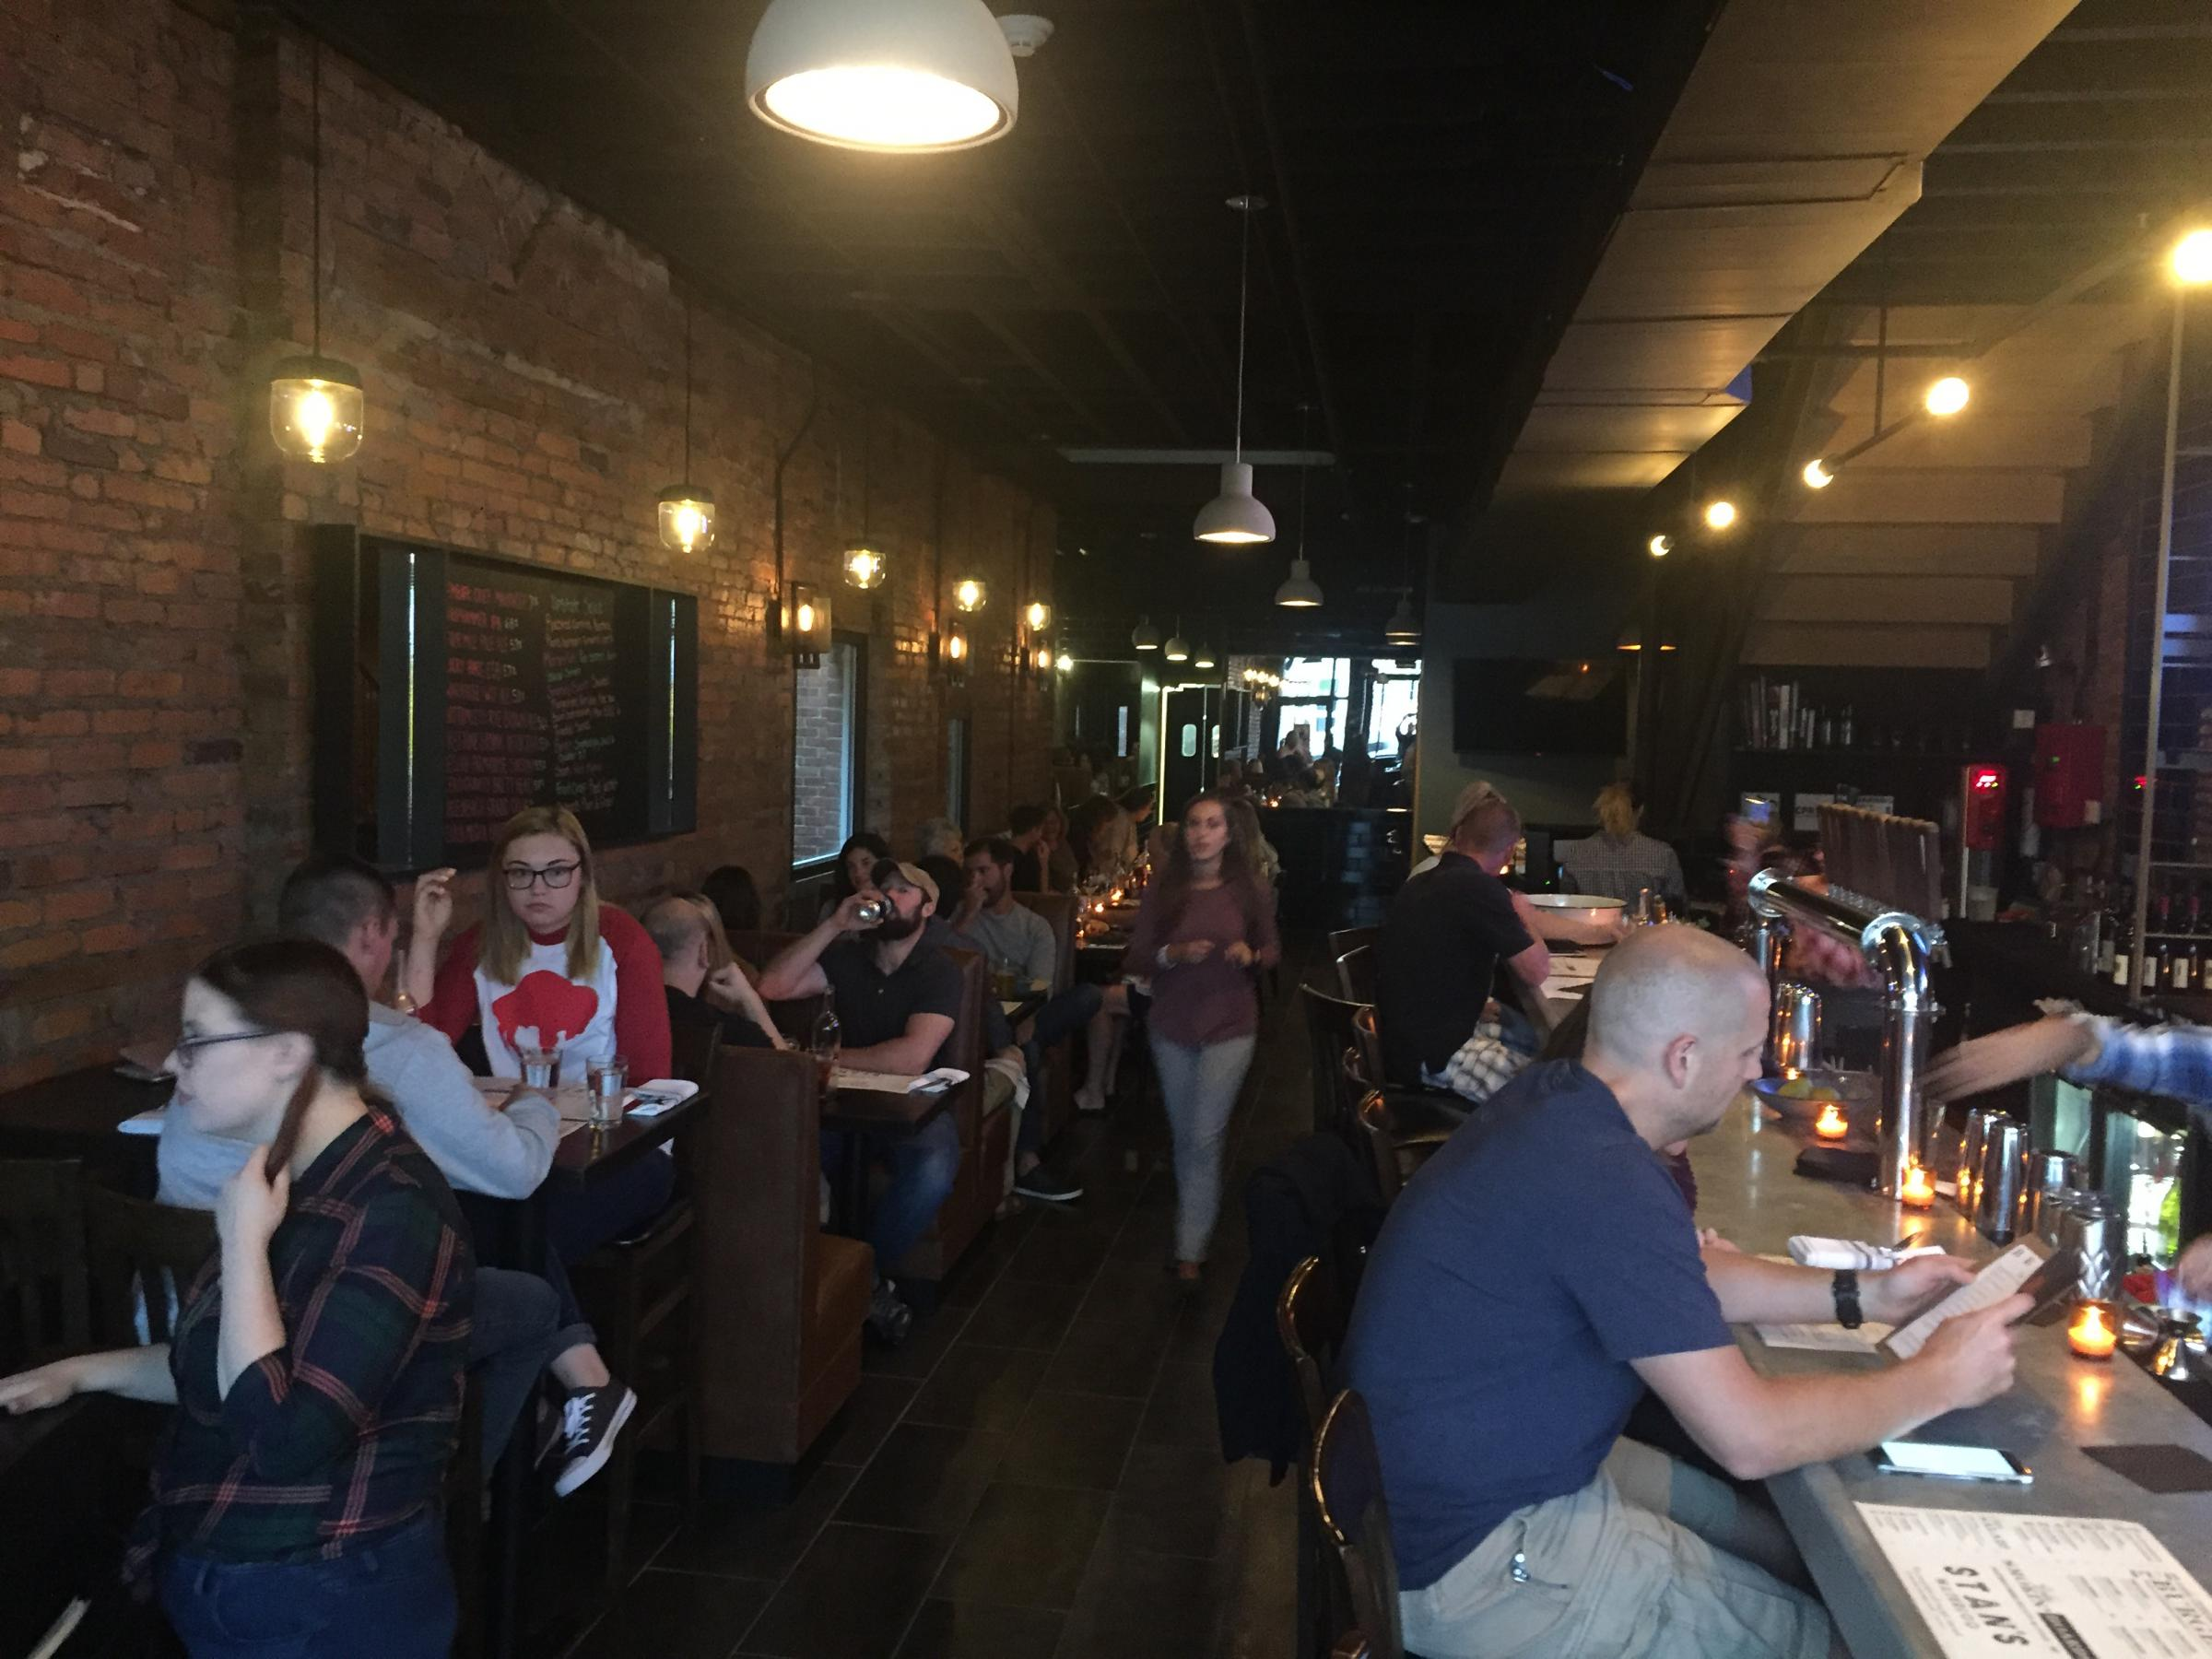 Stan's in Waterloo will serve last meals on February 9th